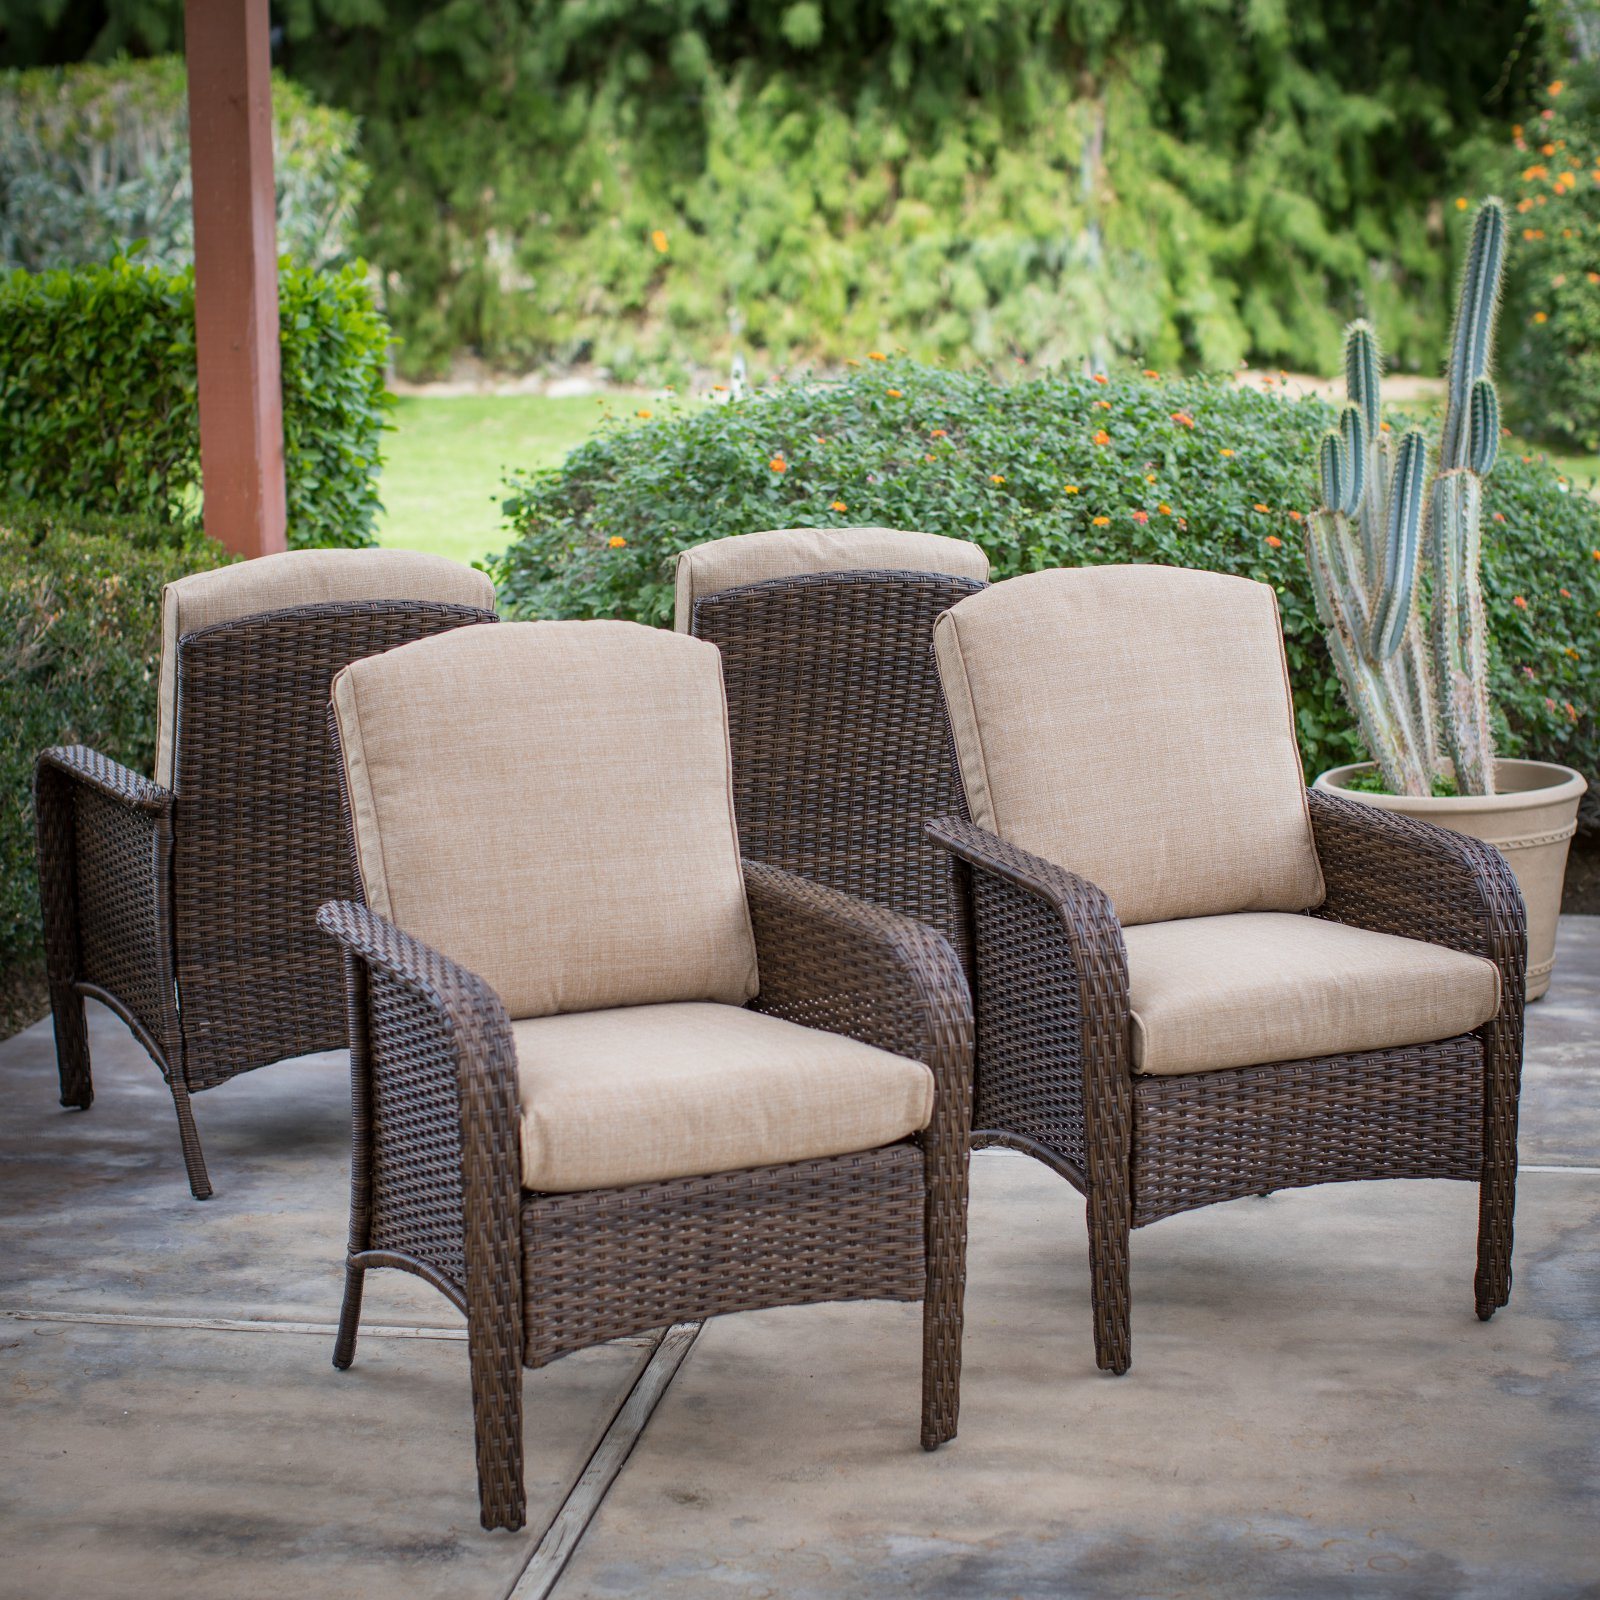 Coral Coast Tiara Garden All Weather Wicker Patio Dining Chairs   Set Of 4